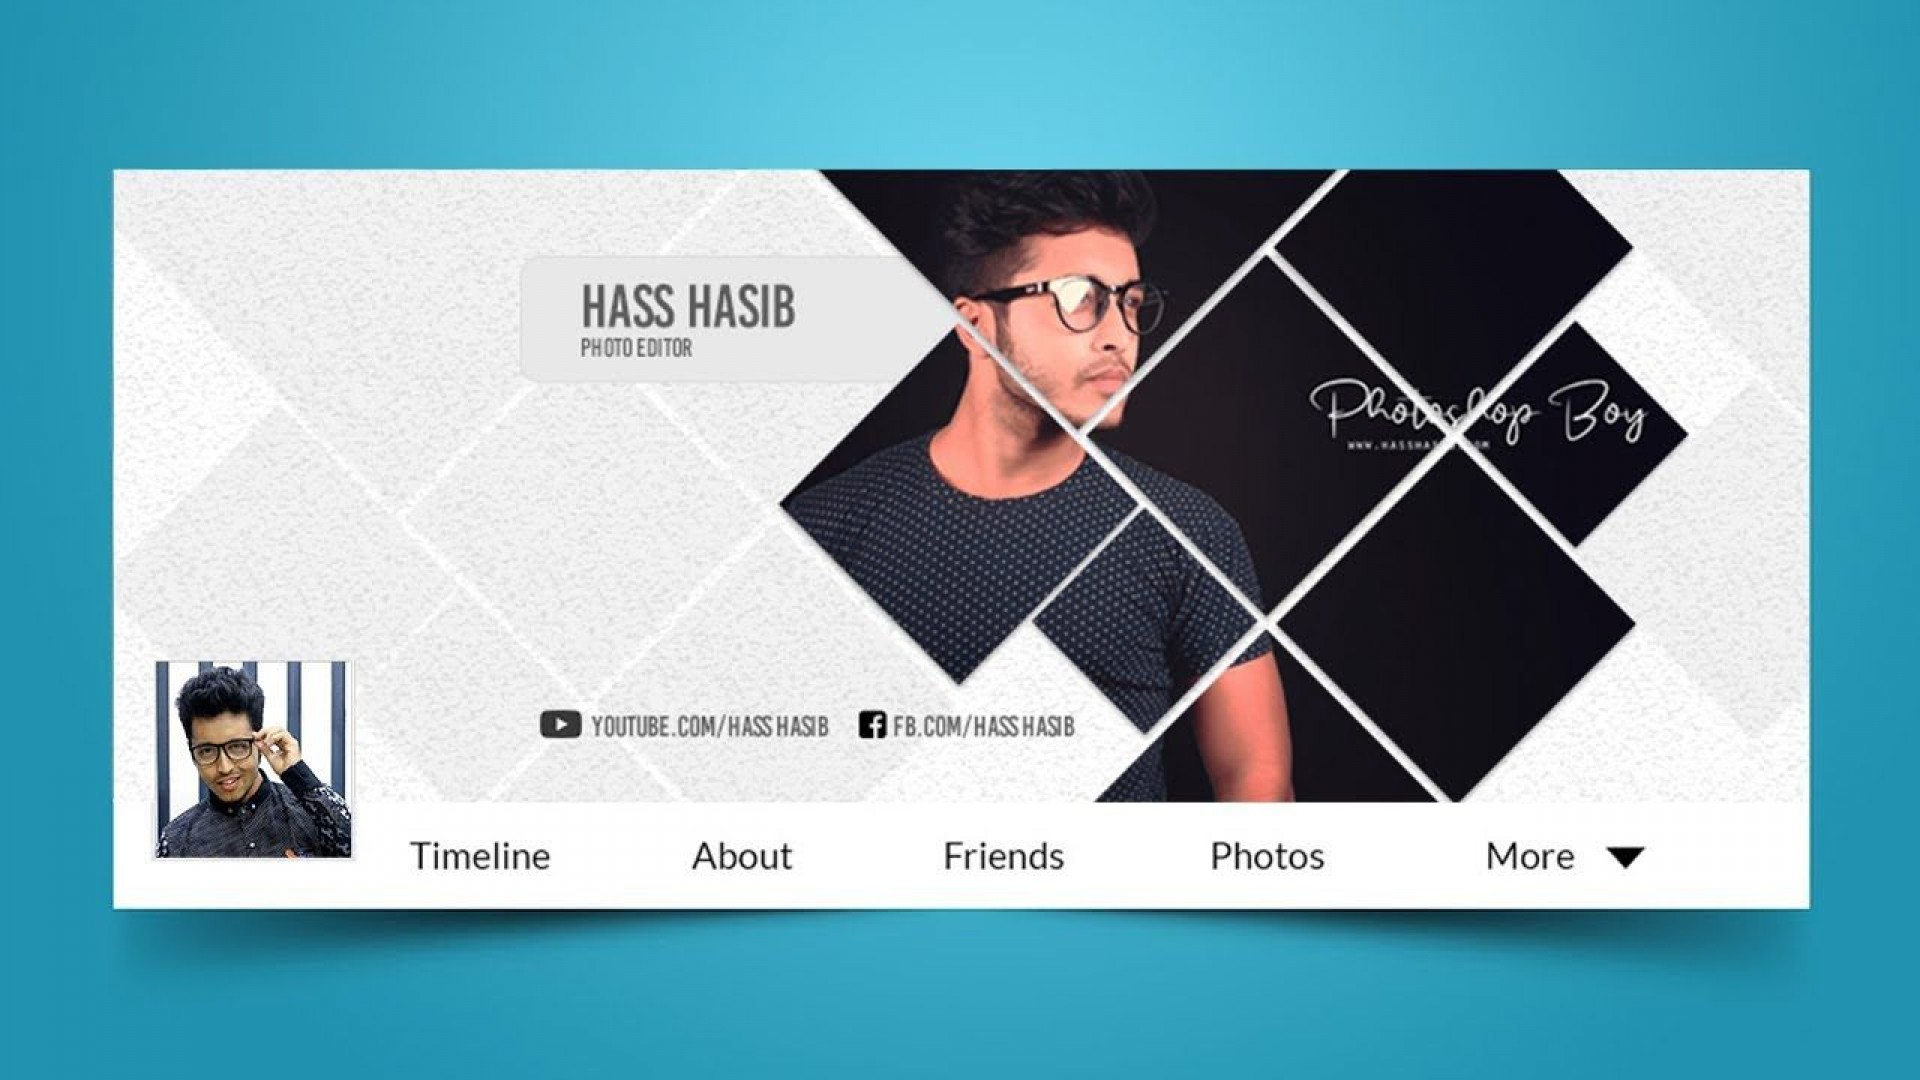 013 Best Facebook Cover Photo Photoshop Template Sample  2019 Page Profile Picture Size1920